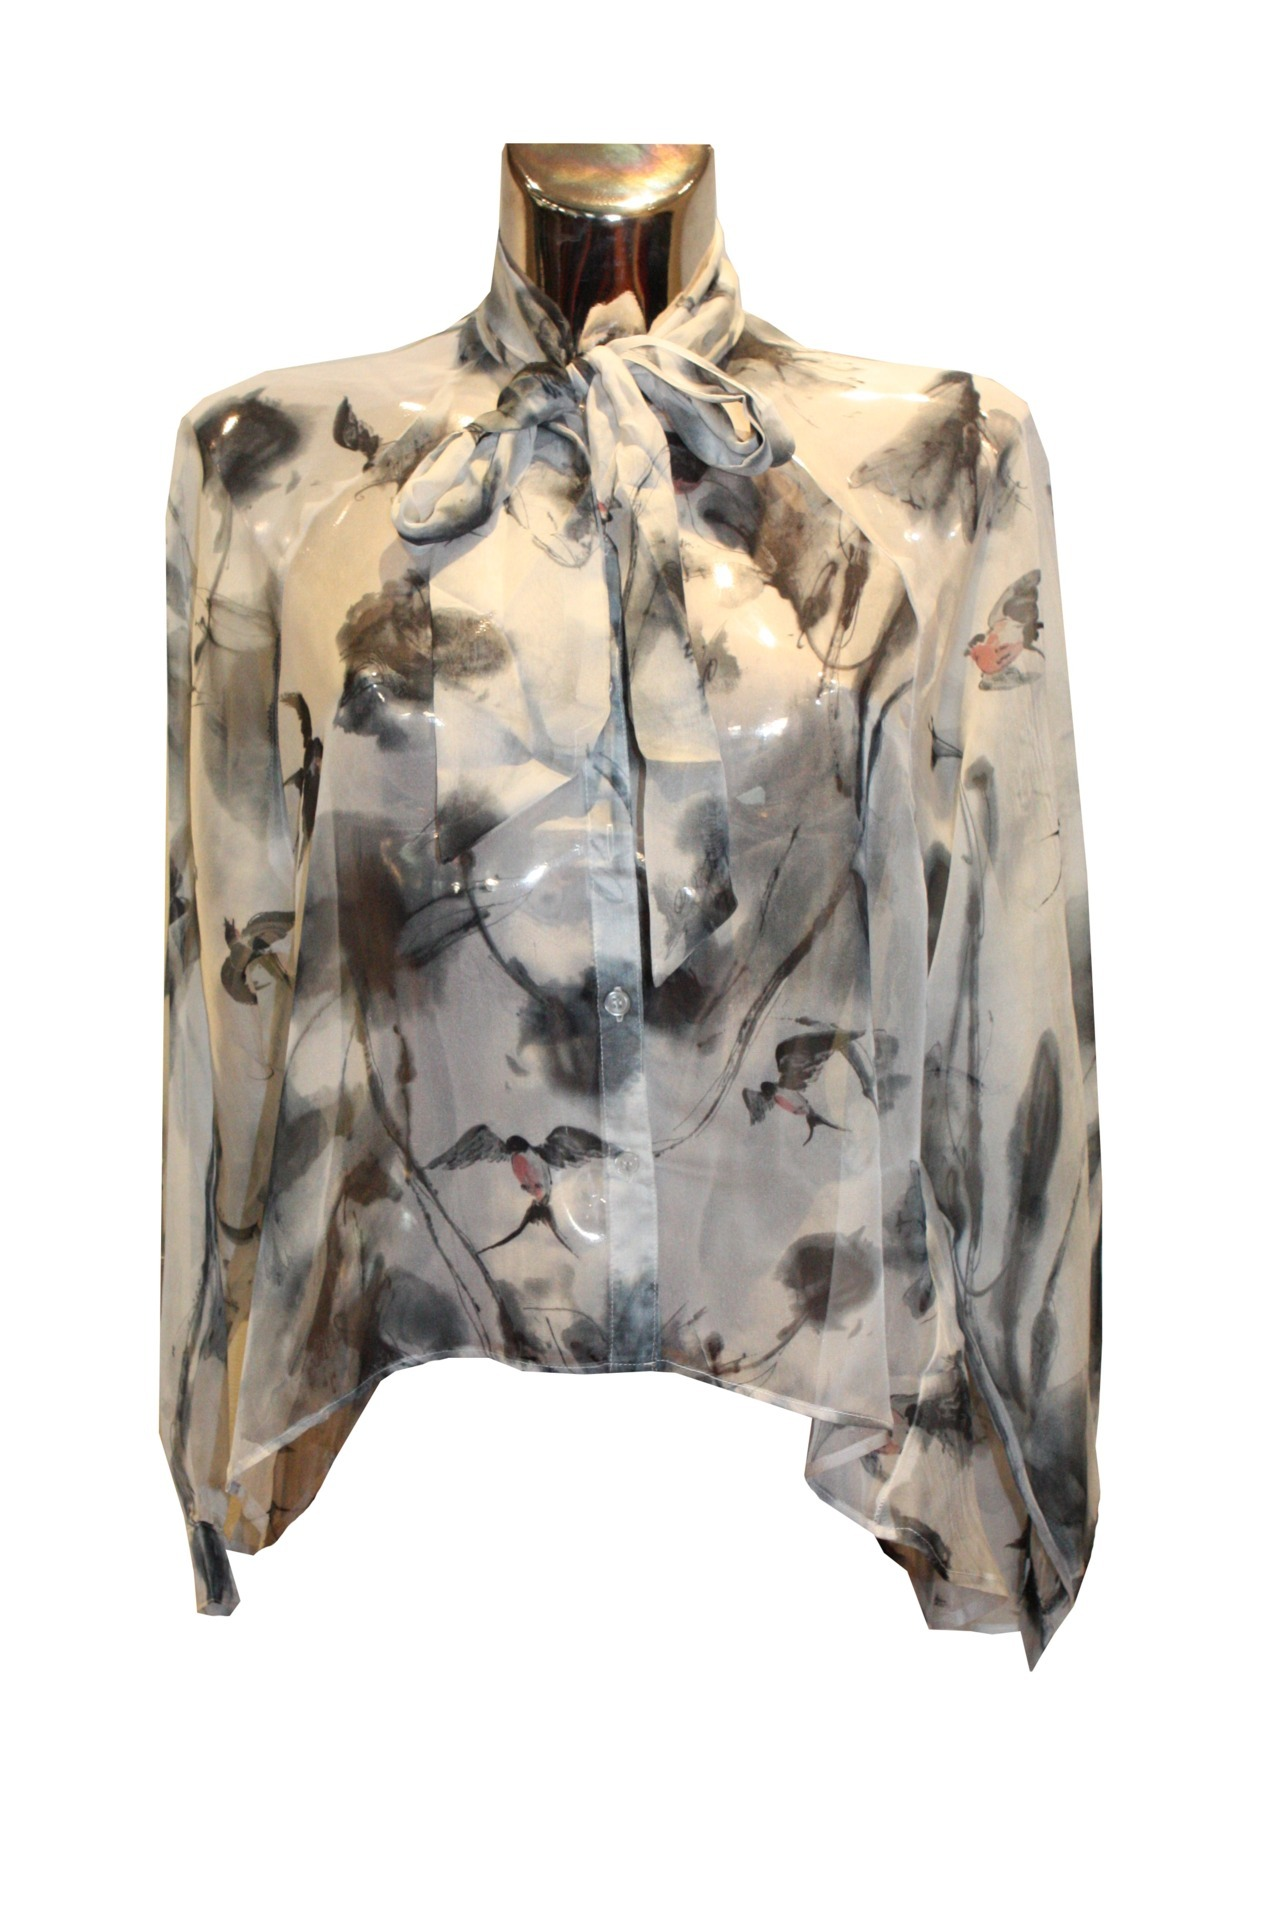 Bird print blouse £45. Available in sizes 8-14.